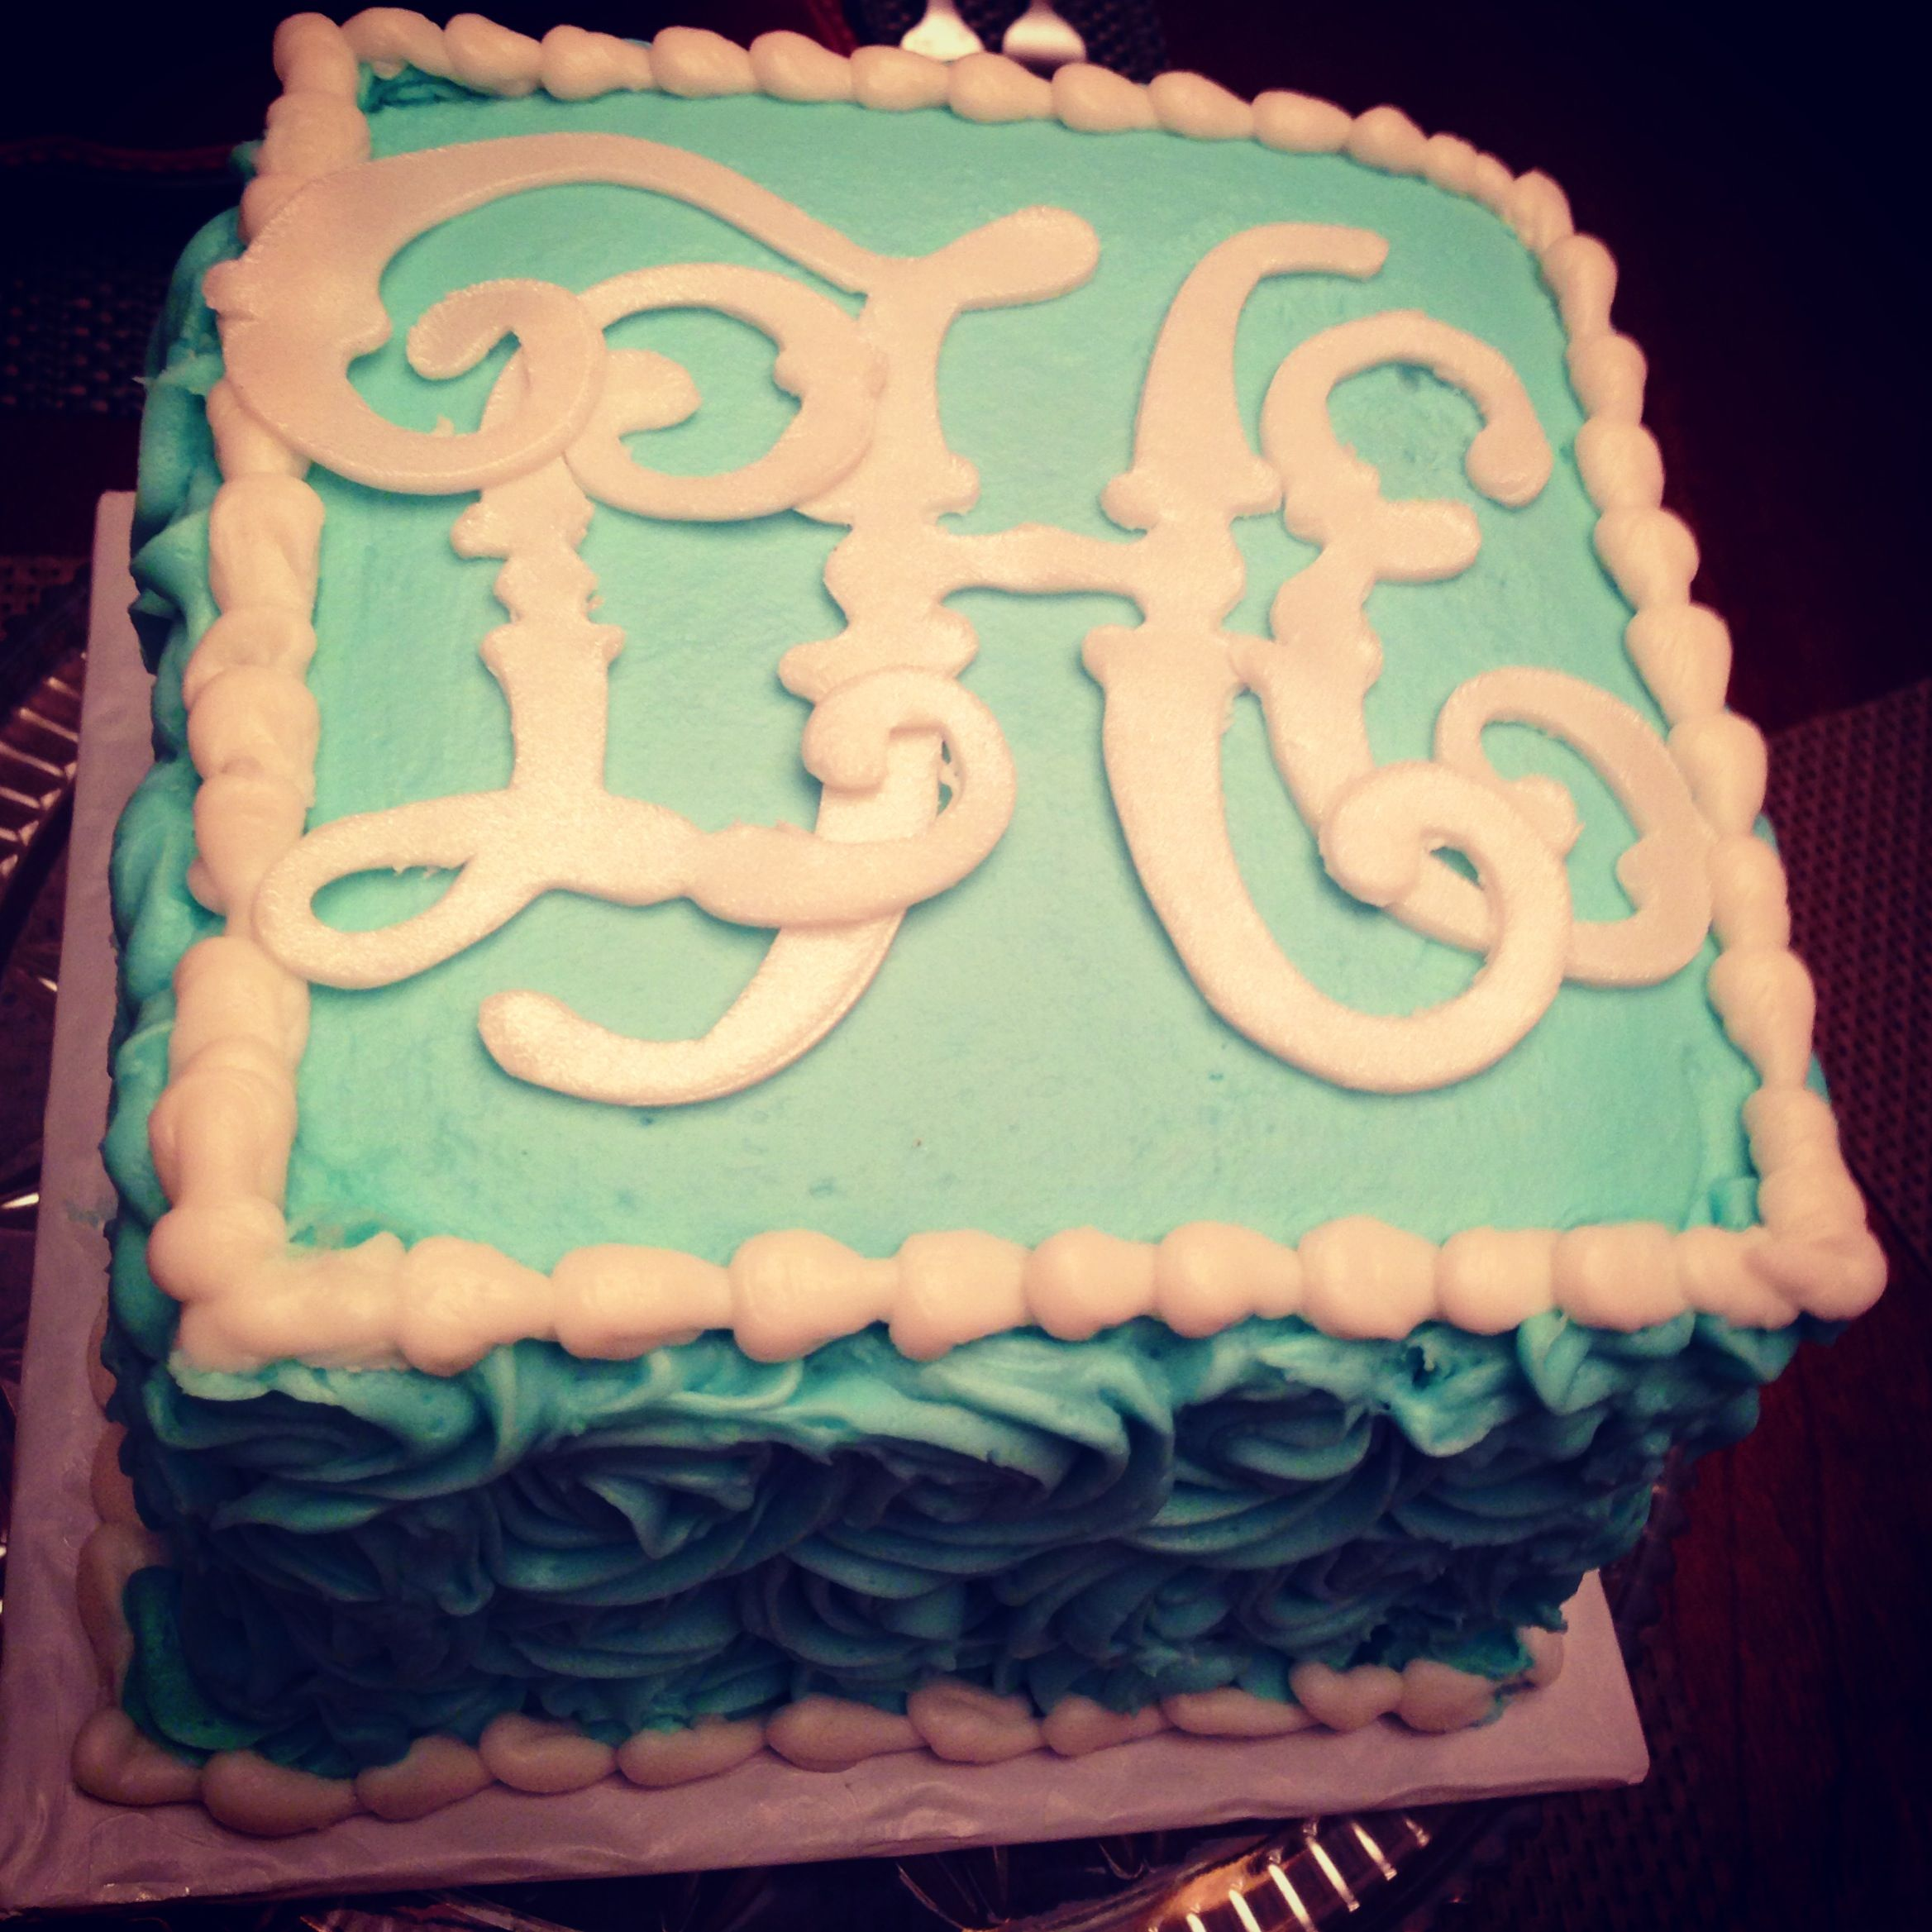 monogrammed birthday cake by chandra if its not